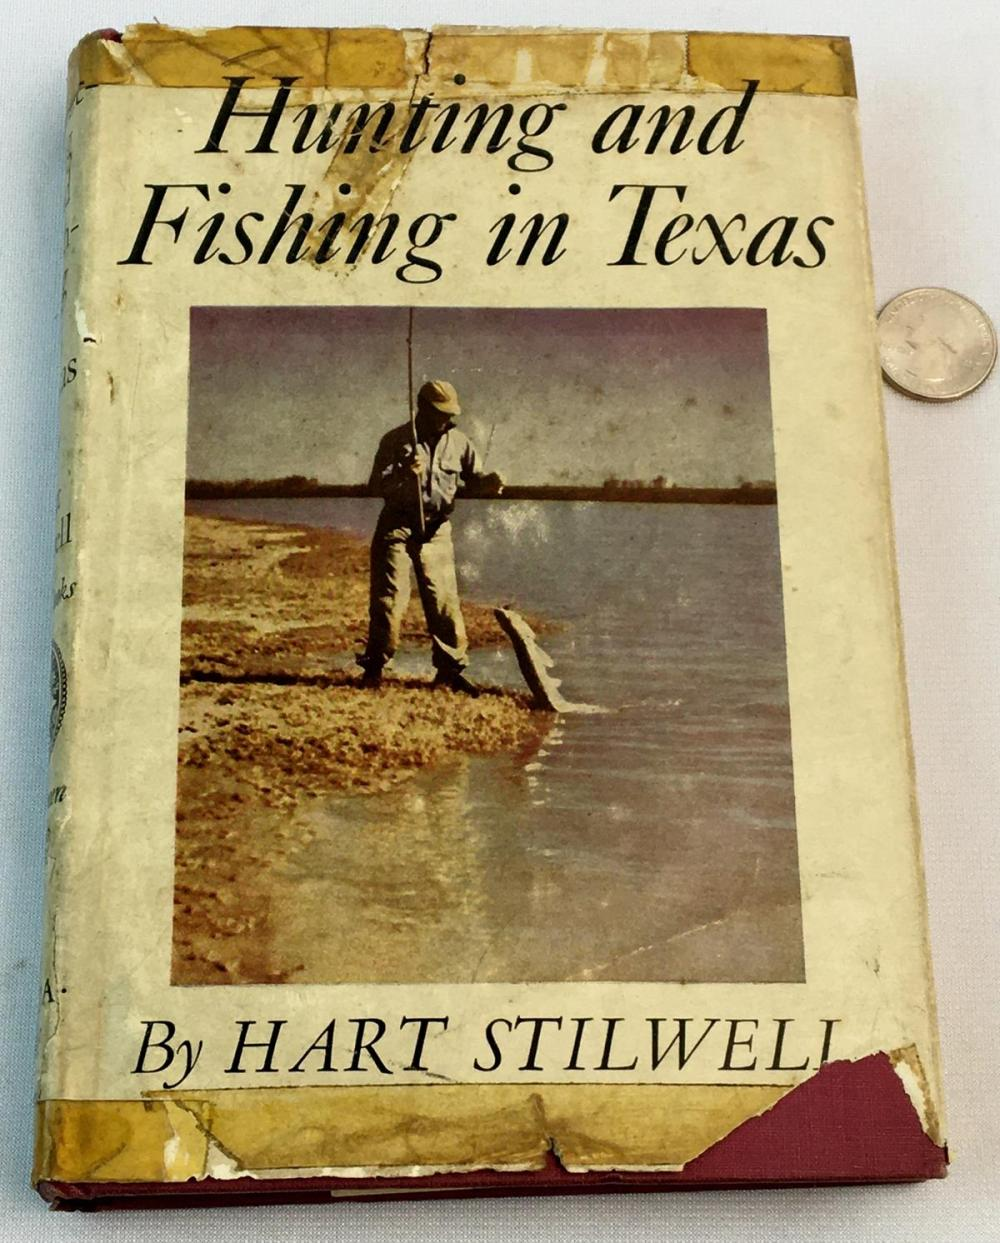 1946 Hunting and Fishing in Texas by Hart Stilwell w/ Dust Jacket Illustrated FIRST EDITION